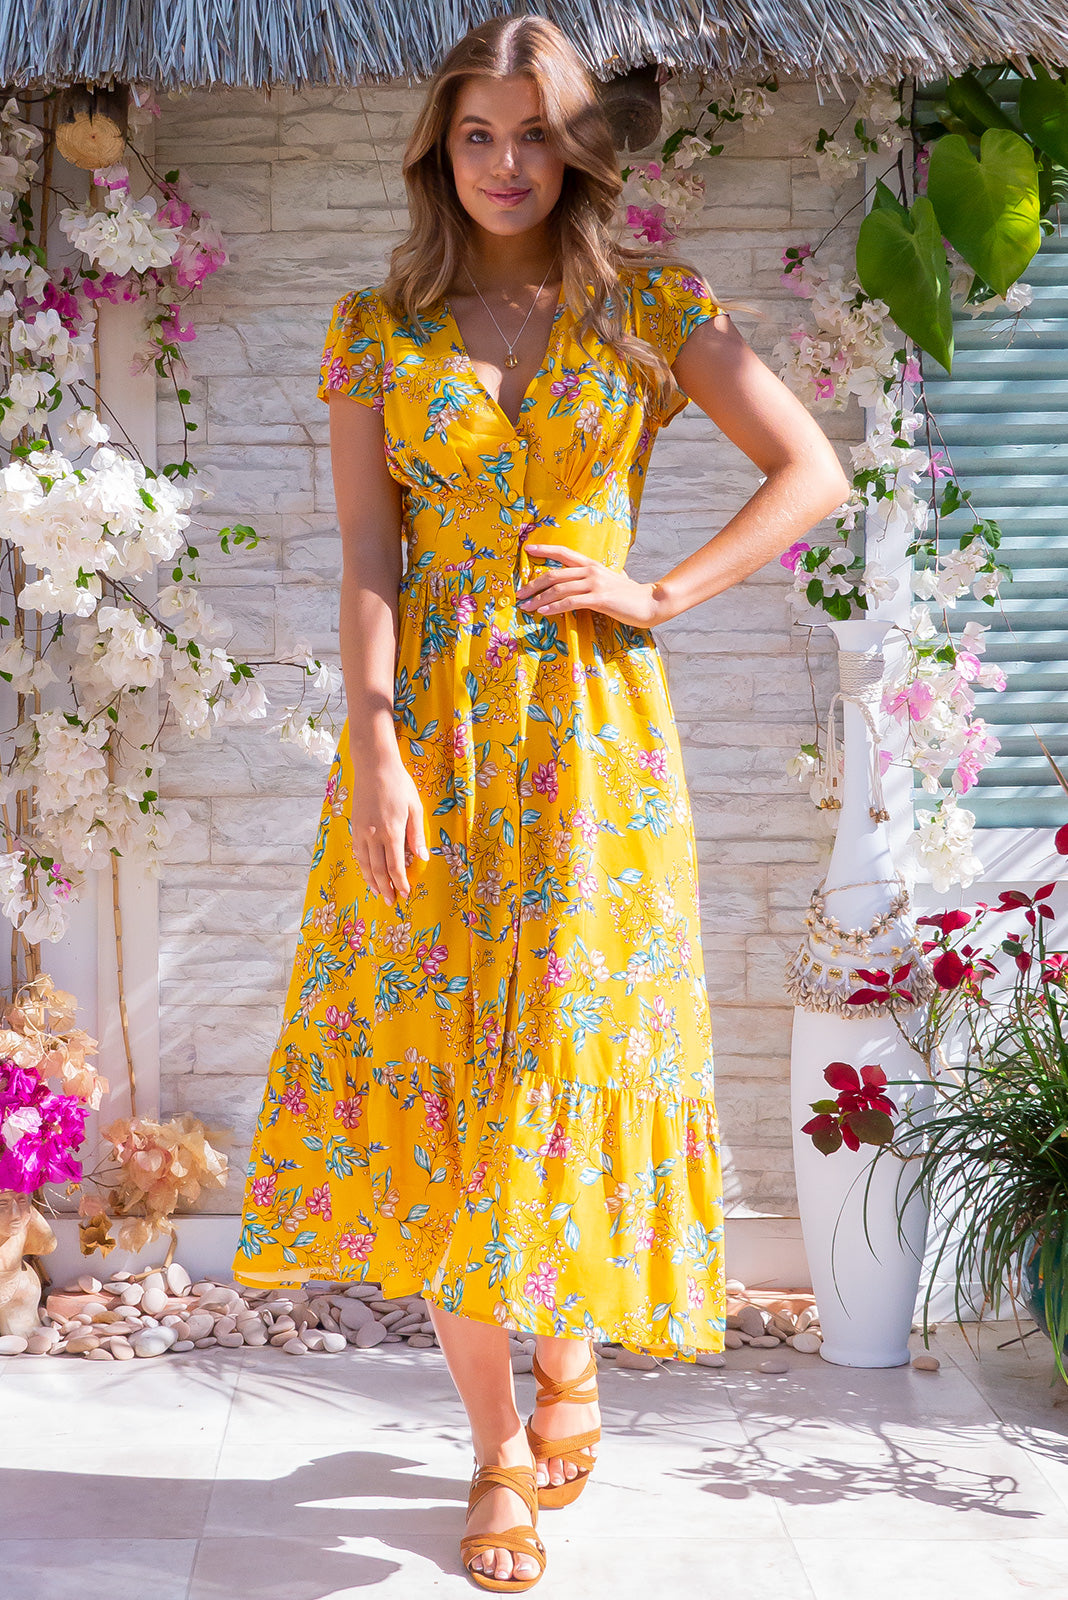 Jude Honey Gold Dress - Summer vintage inspired yellow 100% viscose dress, featuring functional button front, side pockets and basque waist.